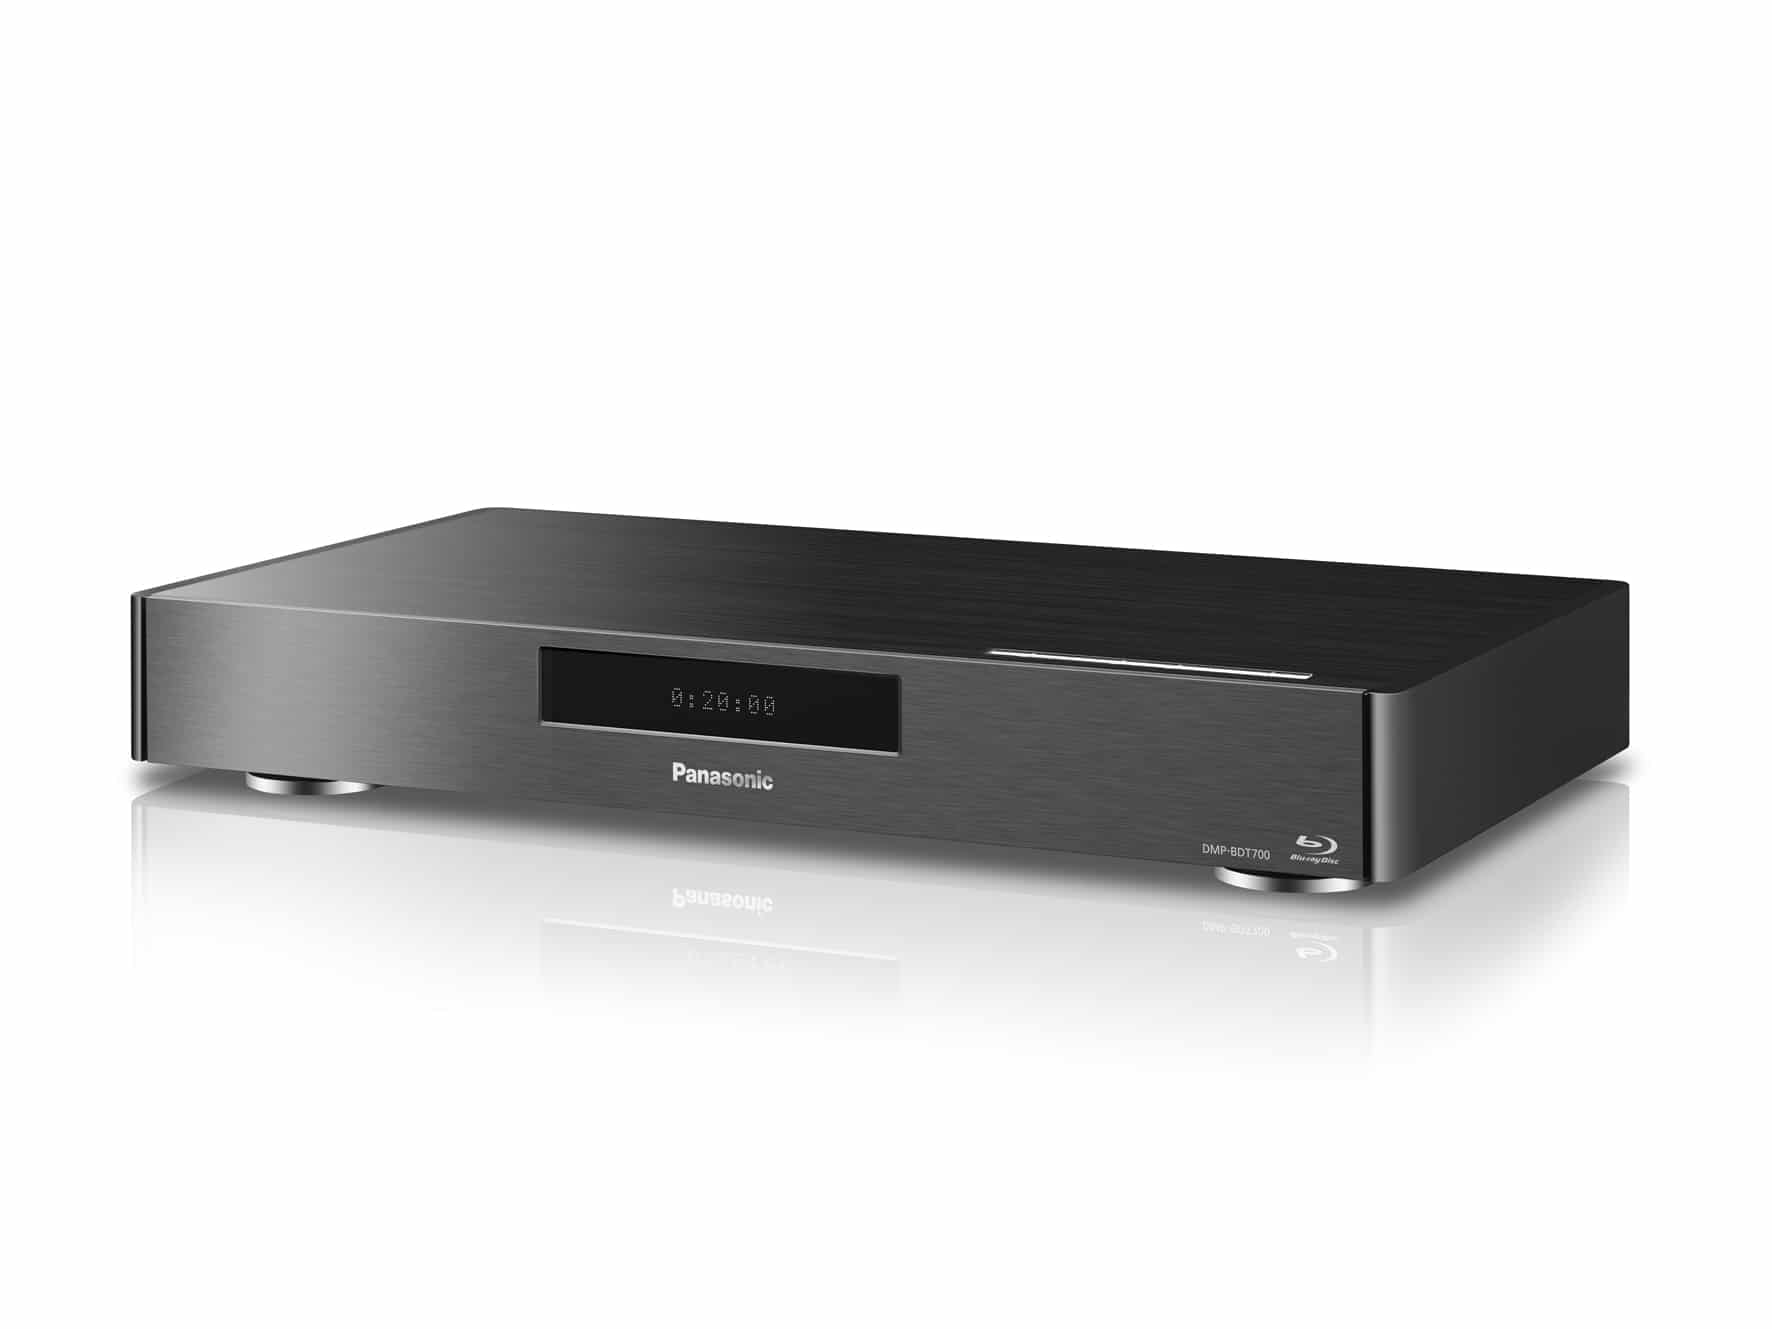 pansonic dmp bdt700 4k blu ray player mit 60p. Black Bedroom Furniture Sets. Home Design Ideas